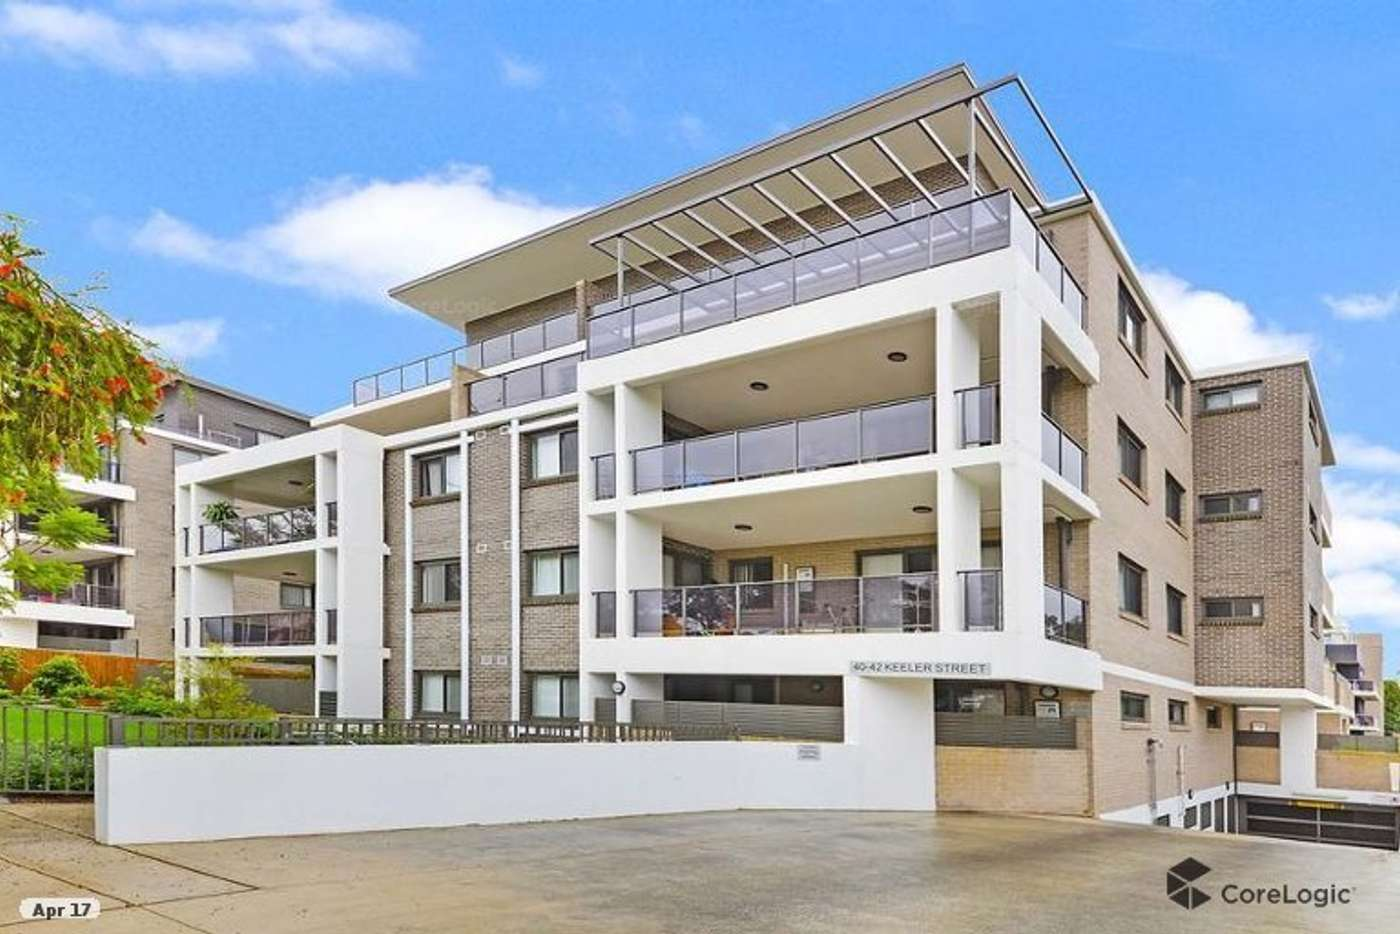 Main view of Homely apartment listing, 1/40 - 42 Keeler St, Carlingford NSW 2118